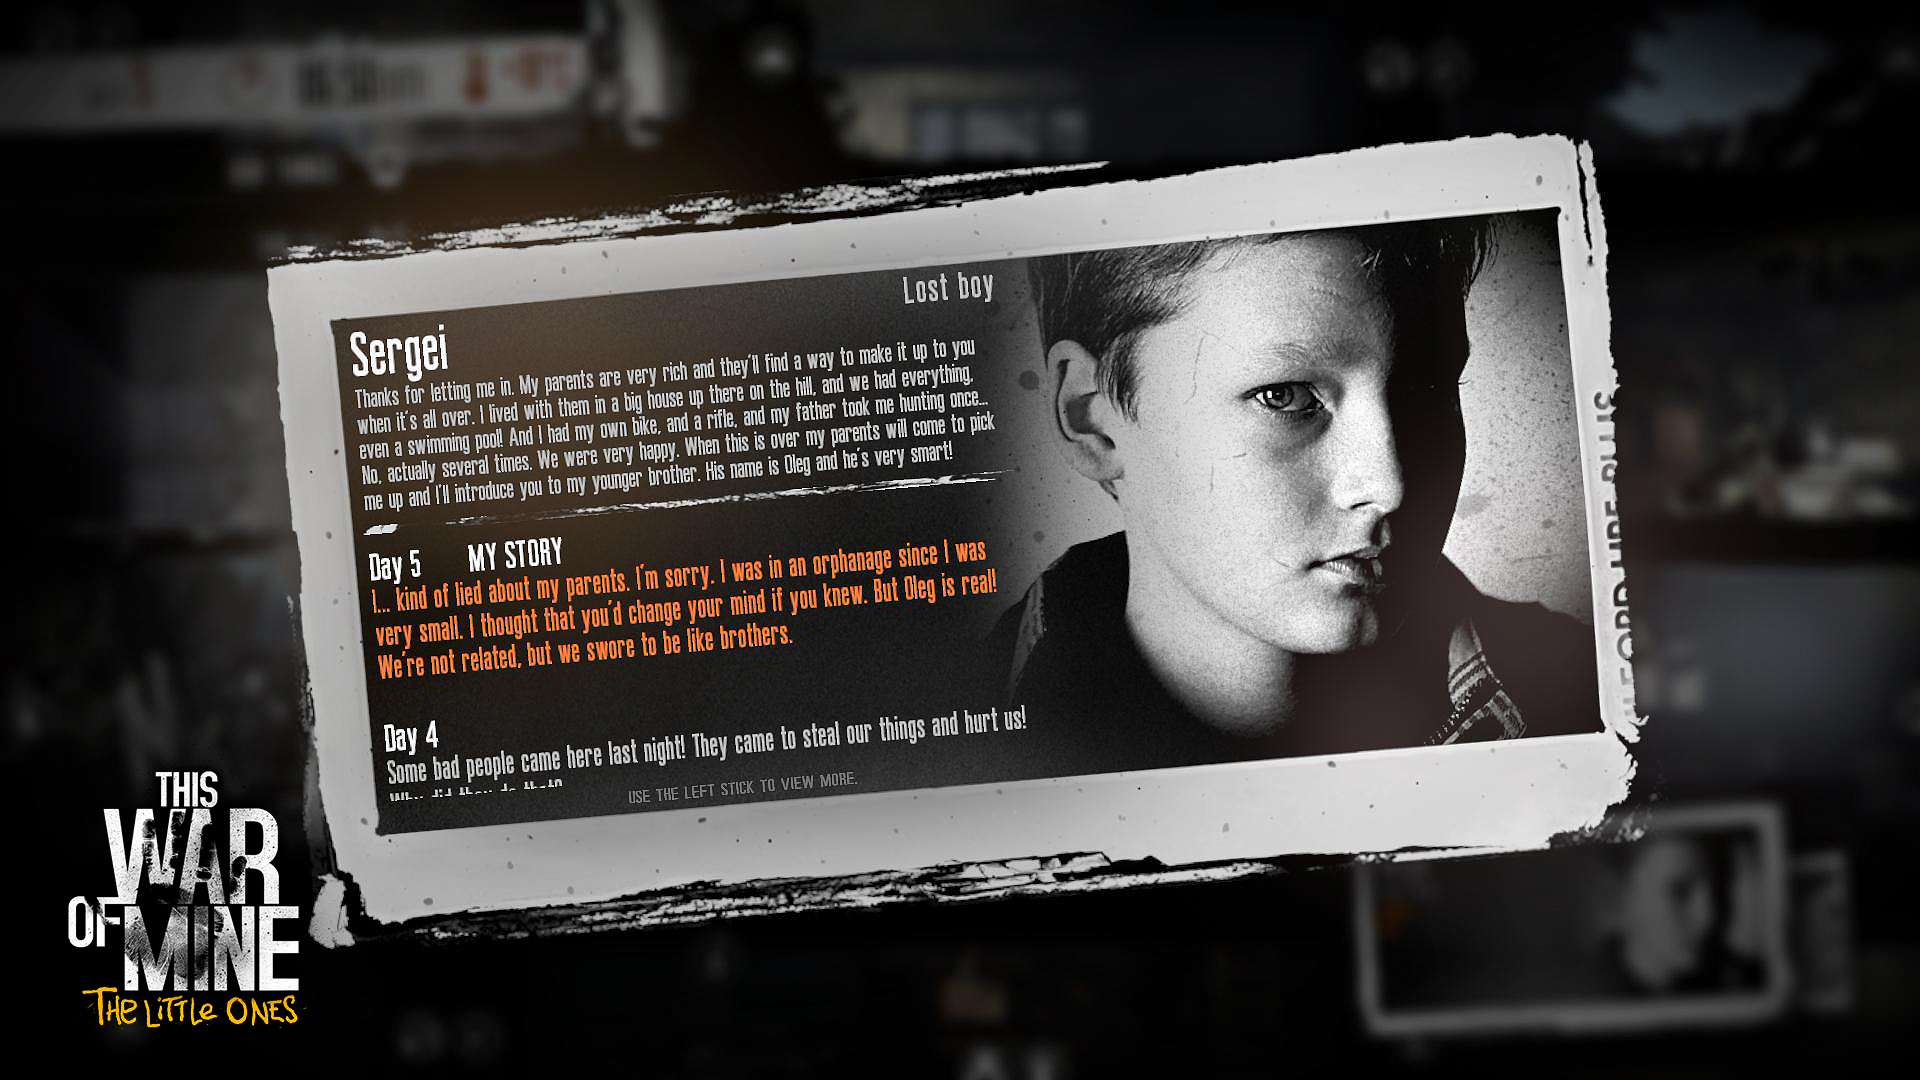 This War of Mine headed to PS4, will put children in harm's way